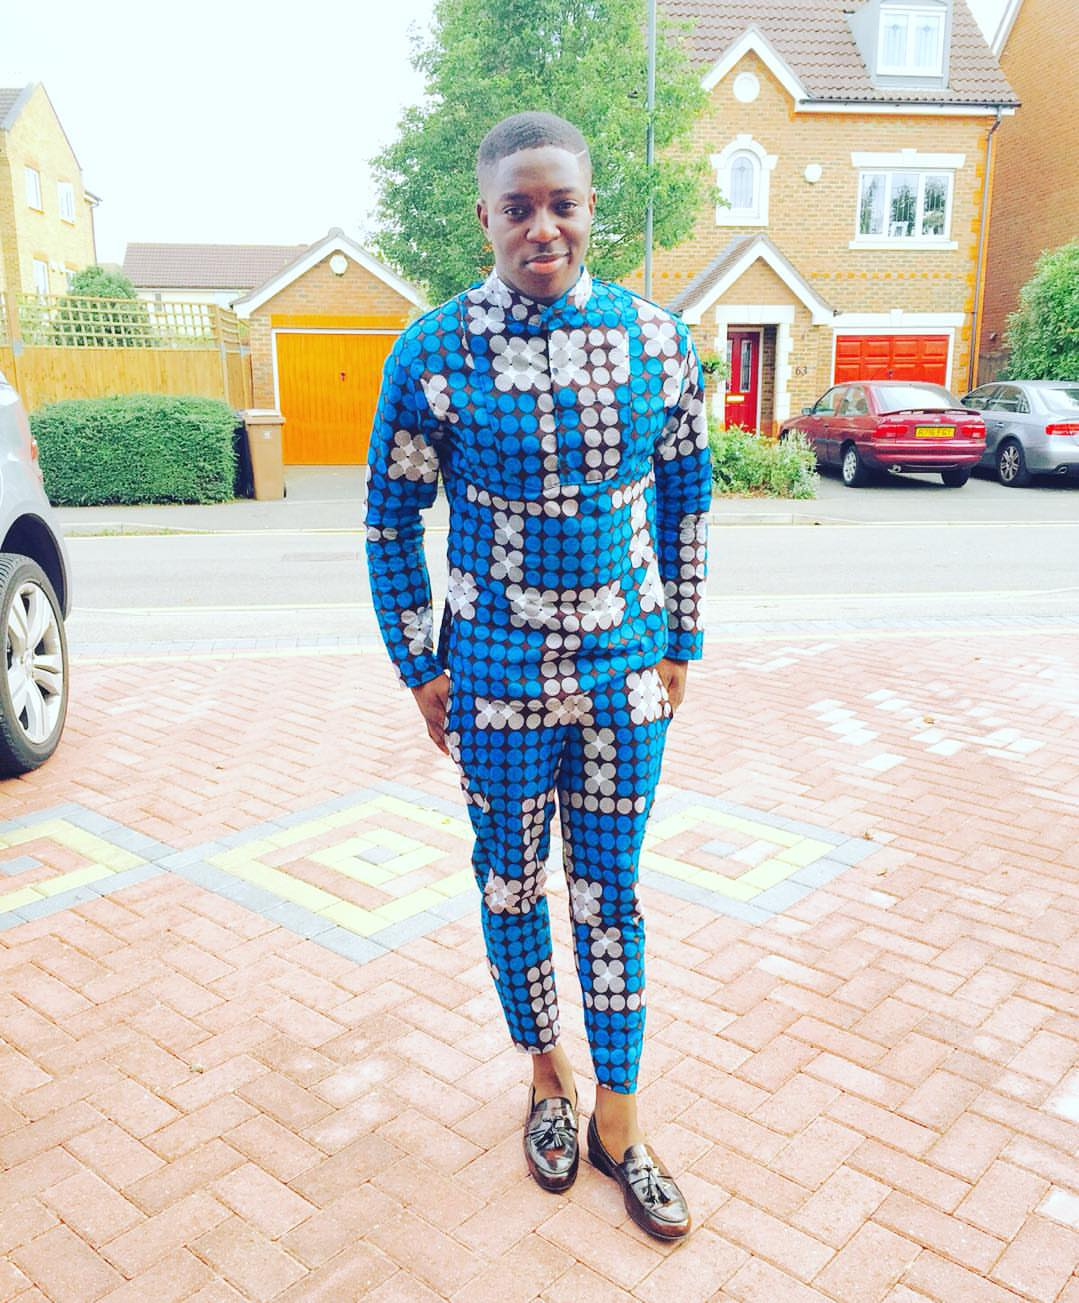 Dope latest ankara styles inspirations idea for men males ilookdope.com trouser, skirt males, man, men, boy, style, design, ankara men style, ankara style for men, ankara suit, ankara slippers pam, ankara tie, ankara shoe